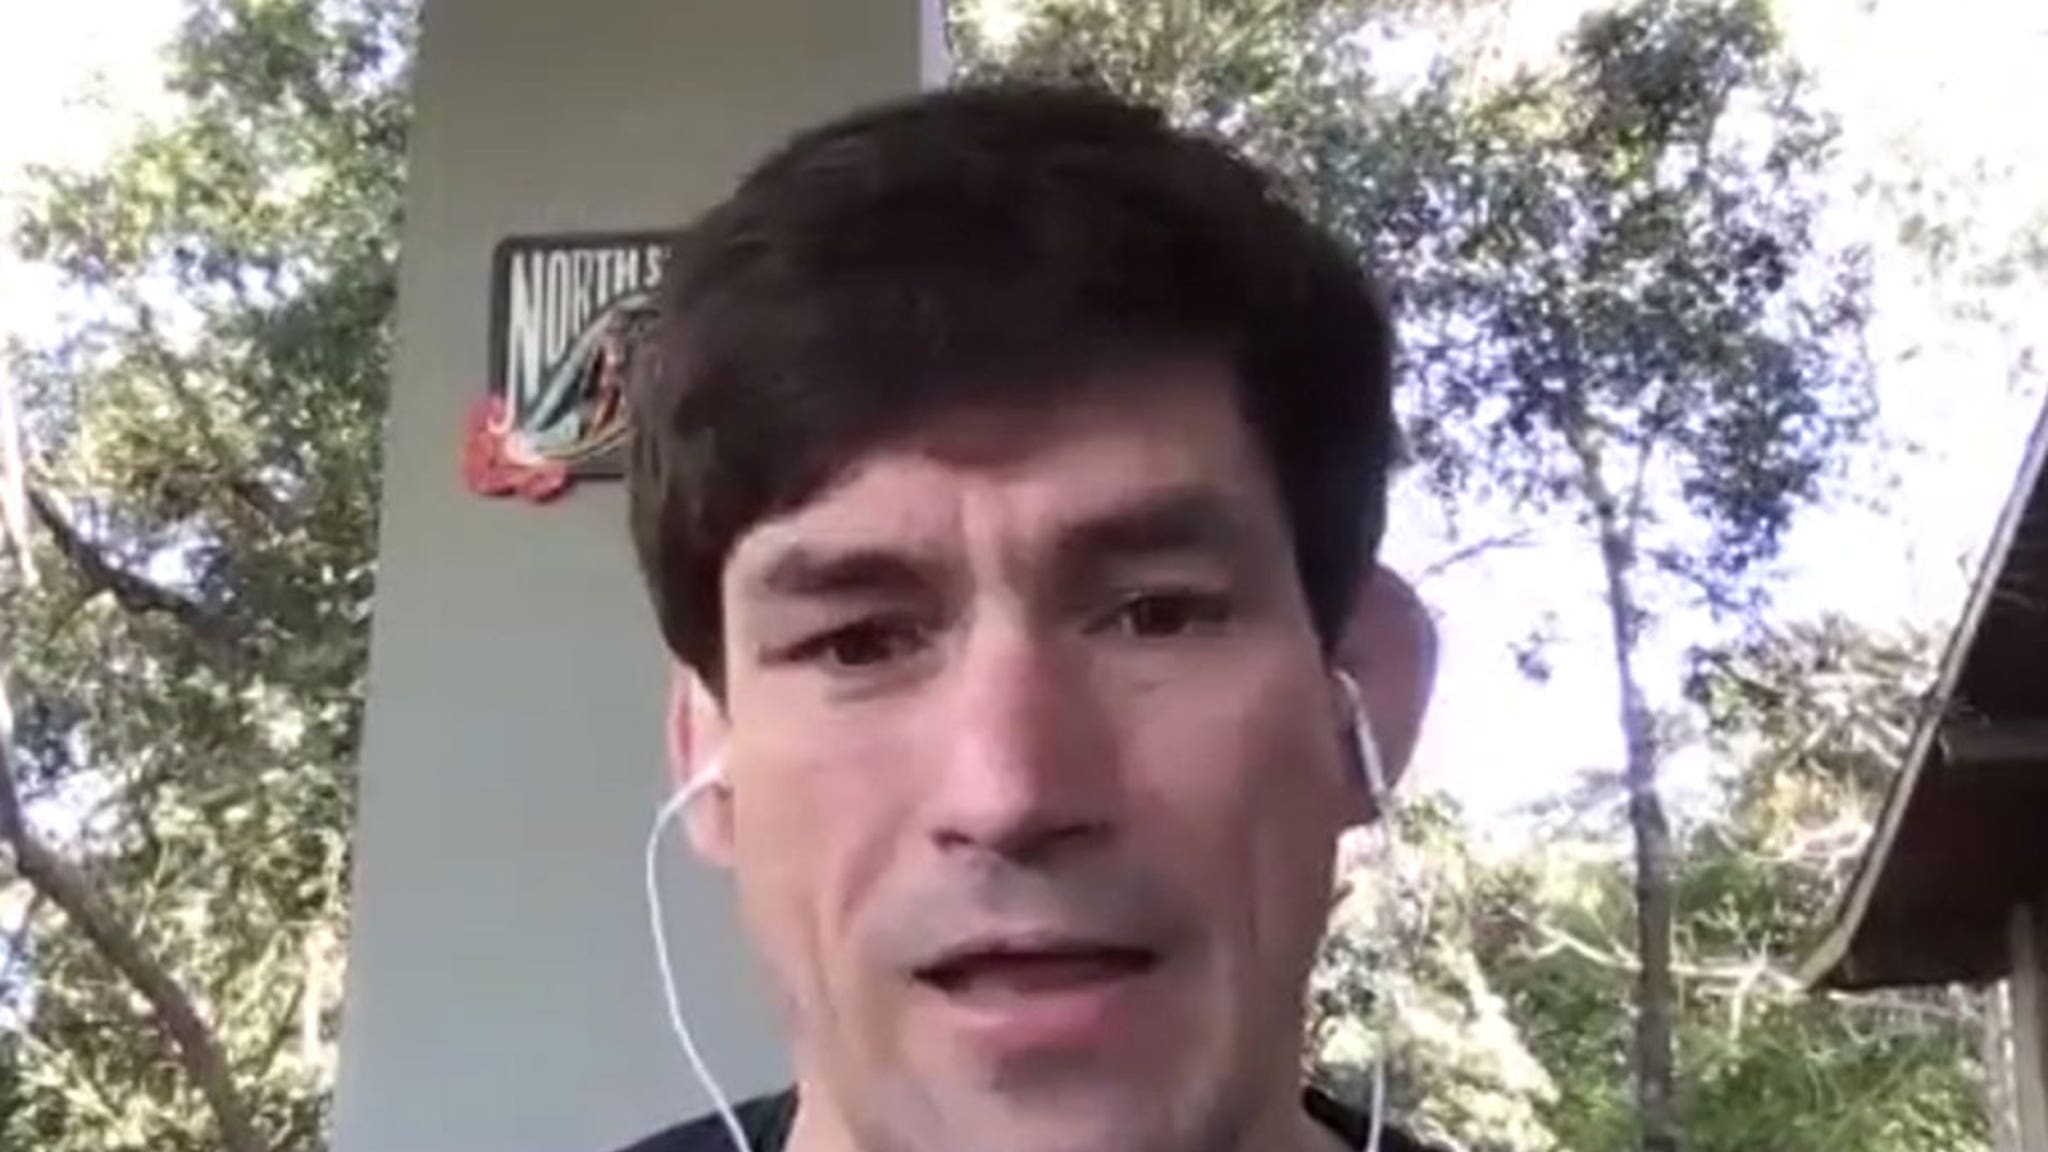 UFC's Demian Maia Predicts Winner of Usman Vs. Masvidal, I Fought 'Em Both! - TMZ